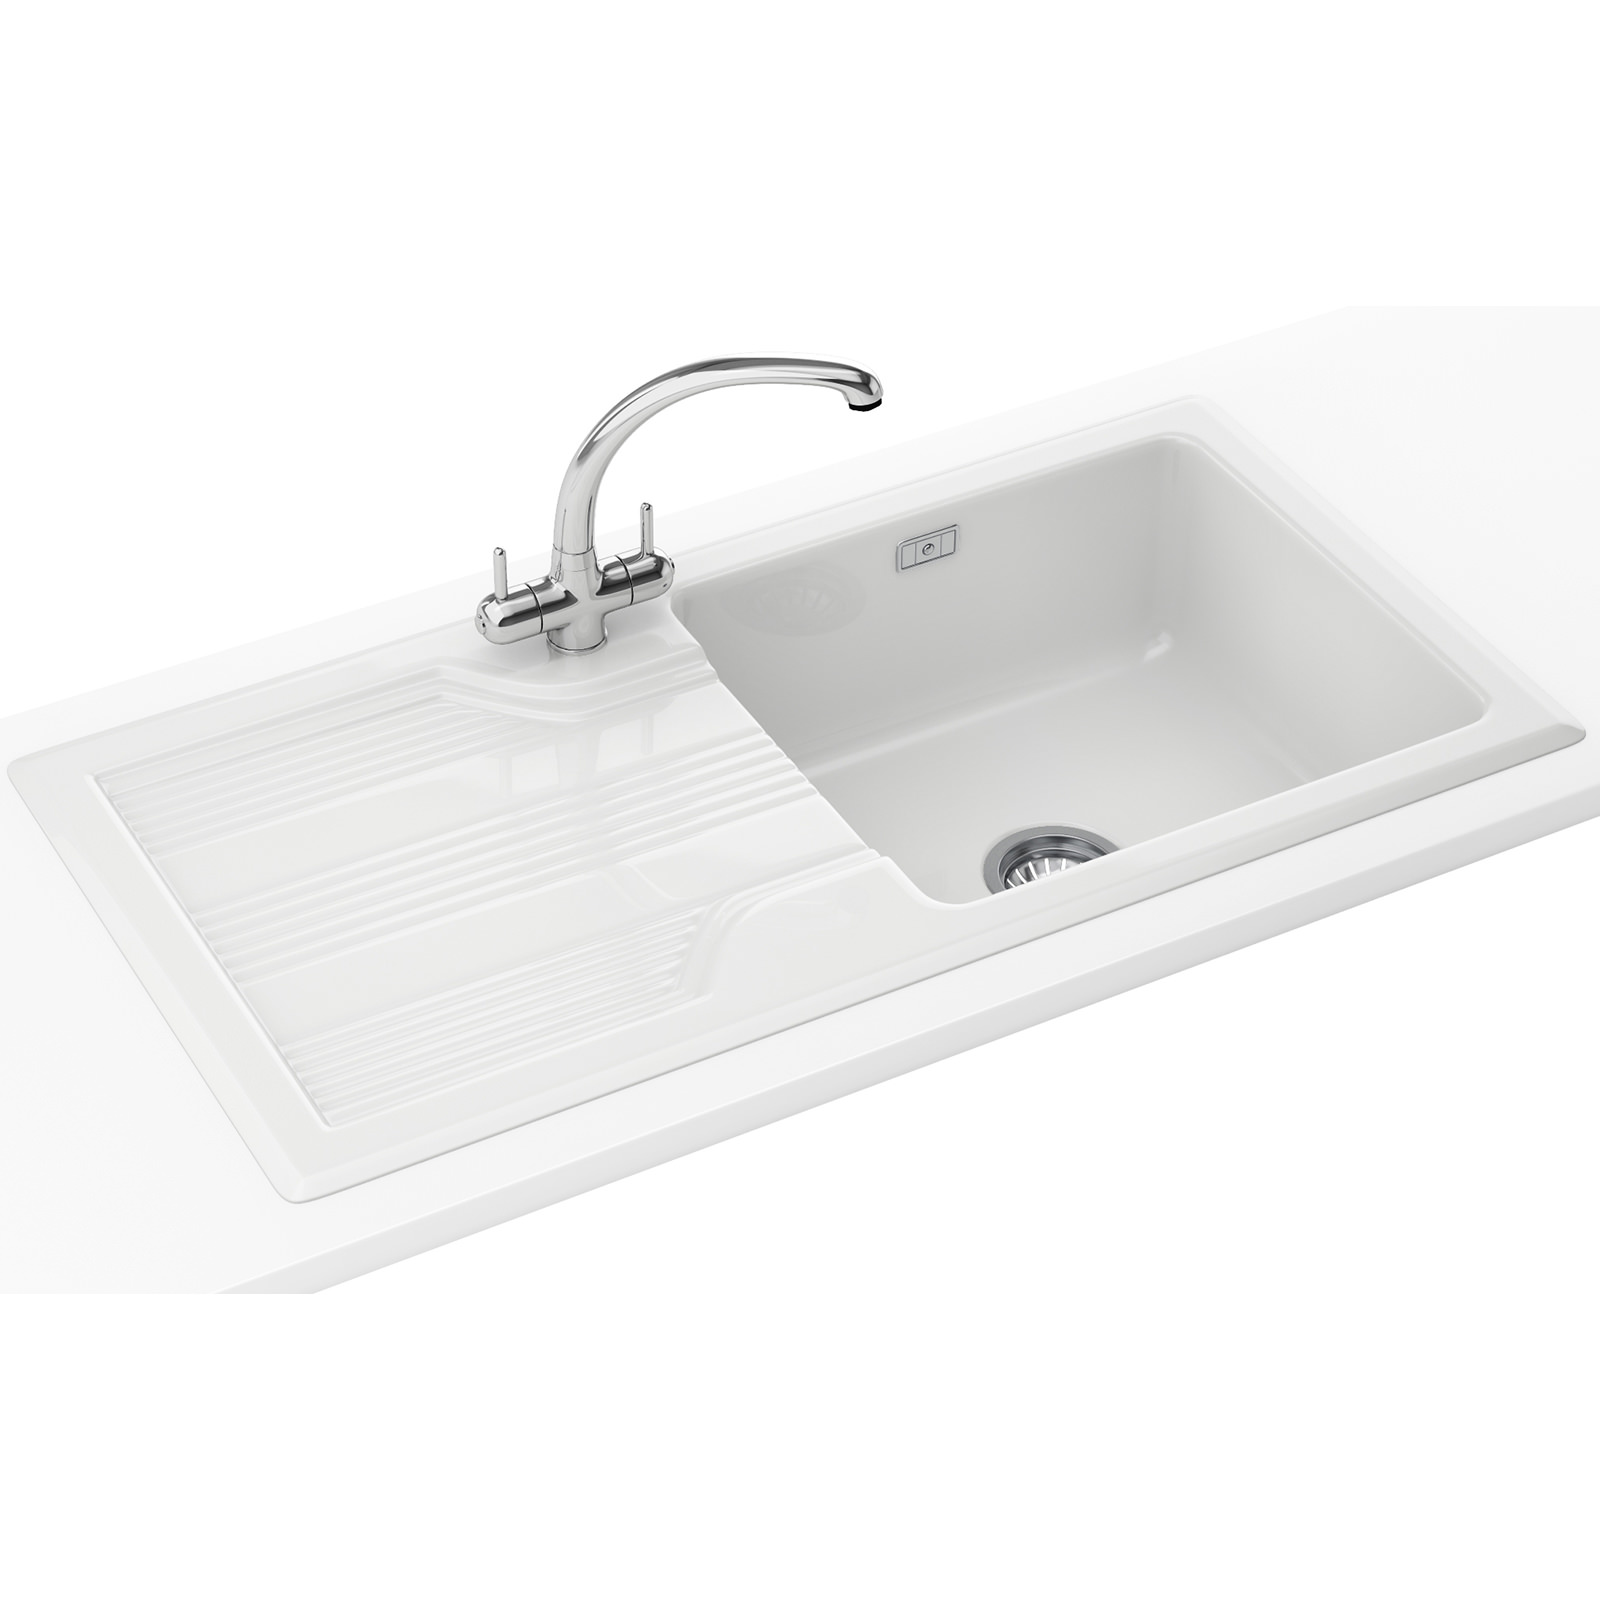 Franke Sinks And Taps : Franke Galassia Propack GAK 611 Ceramic White Inset Sink And Tap 124 ...